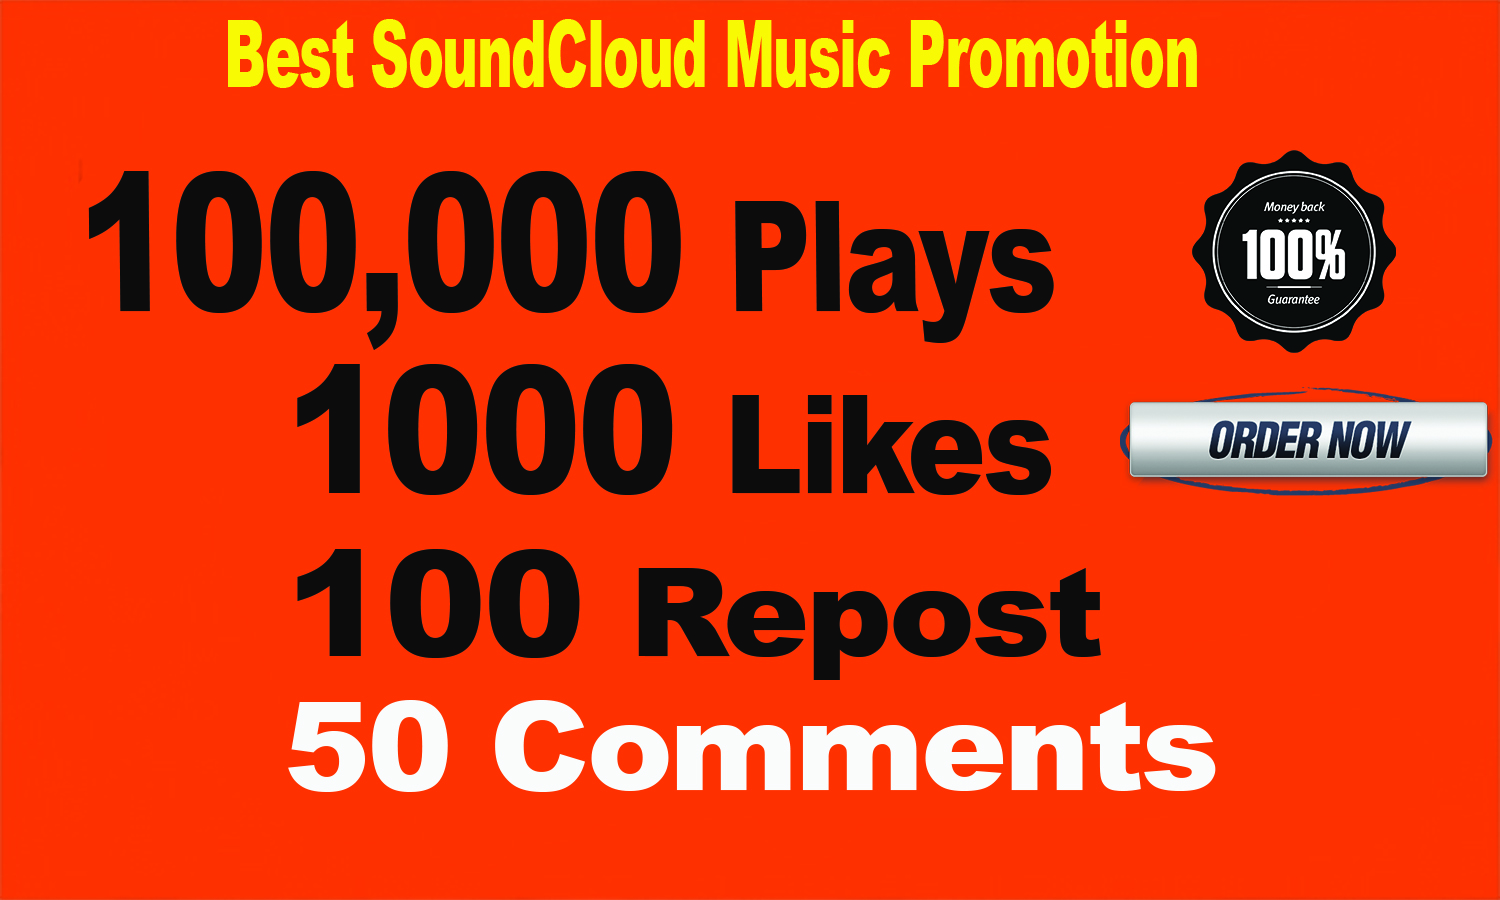 100,000 SoundCloud Plays 1000 Likes 100 Repost 50 Comments